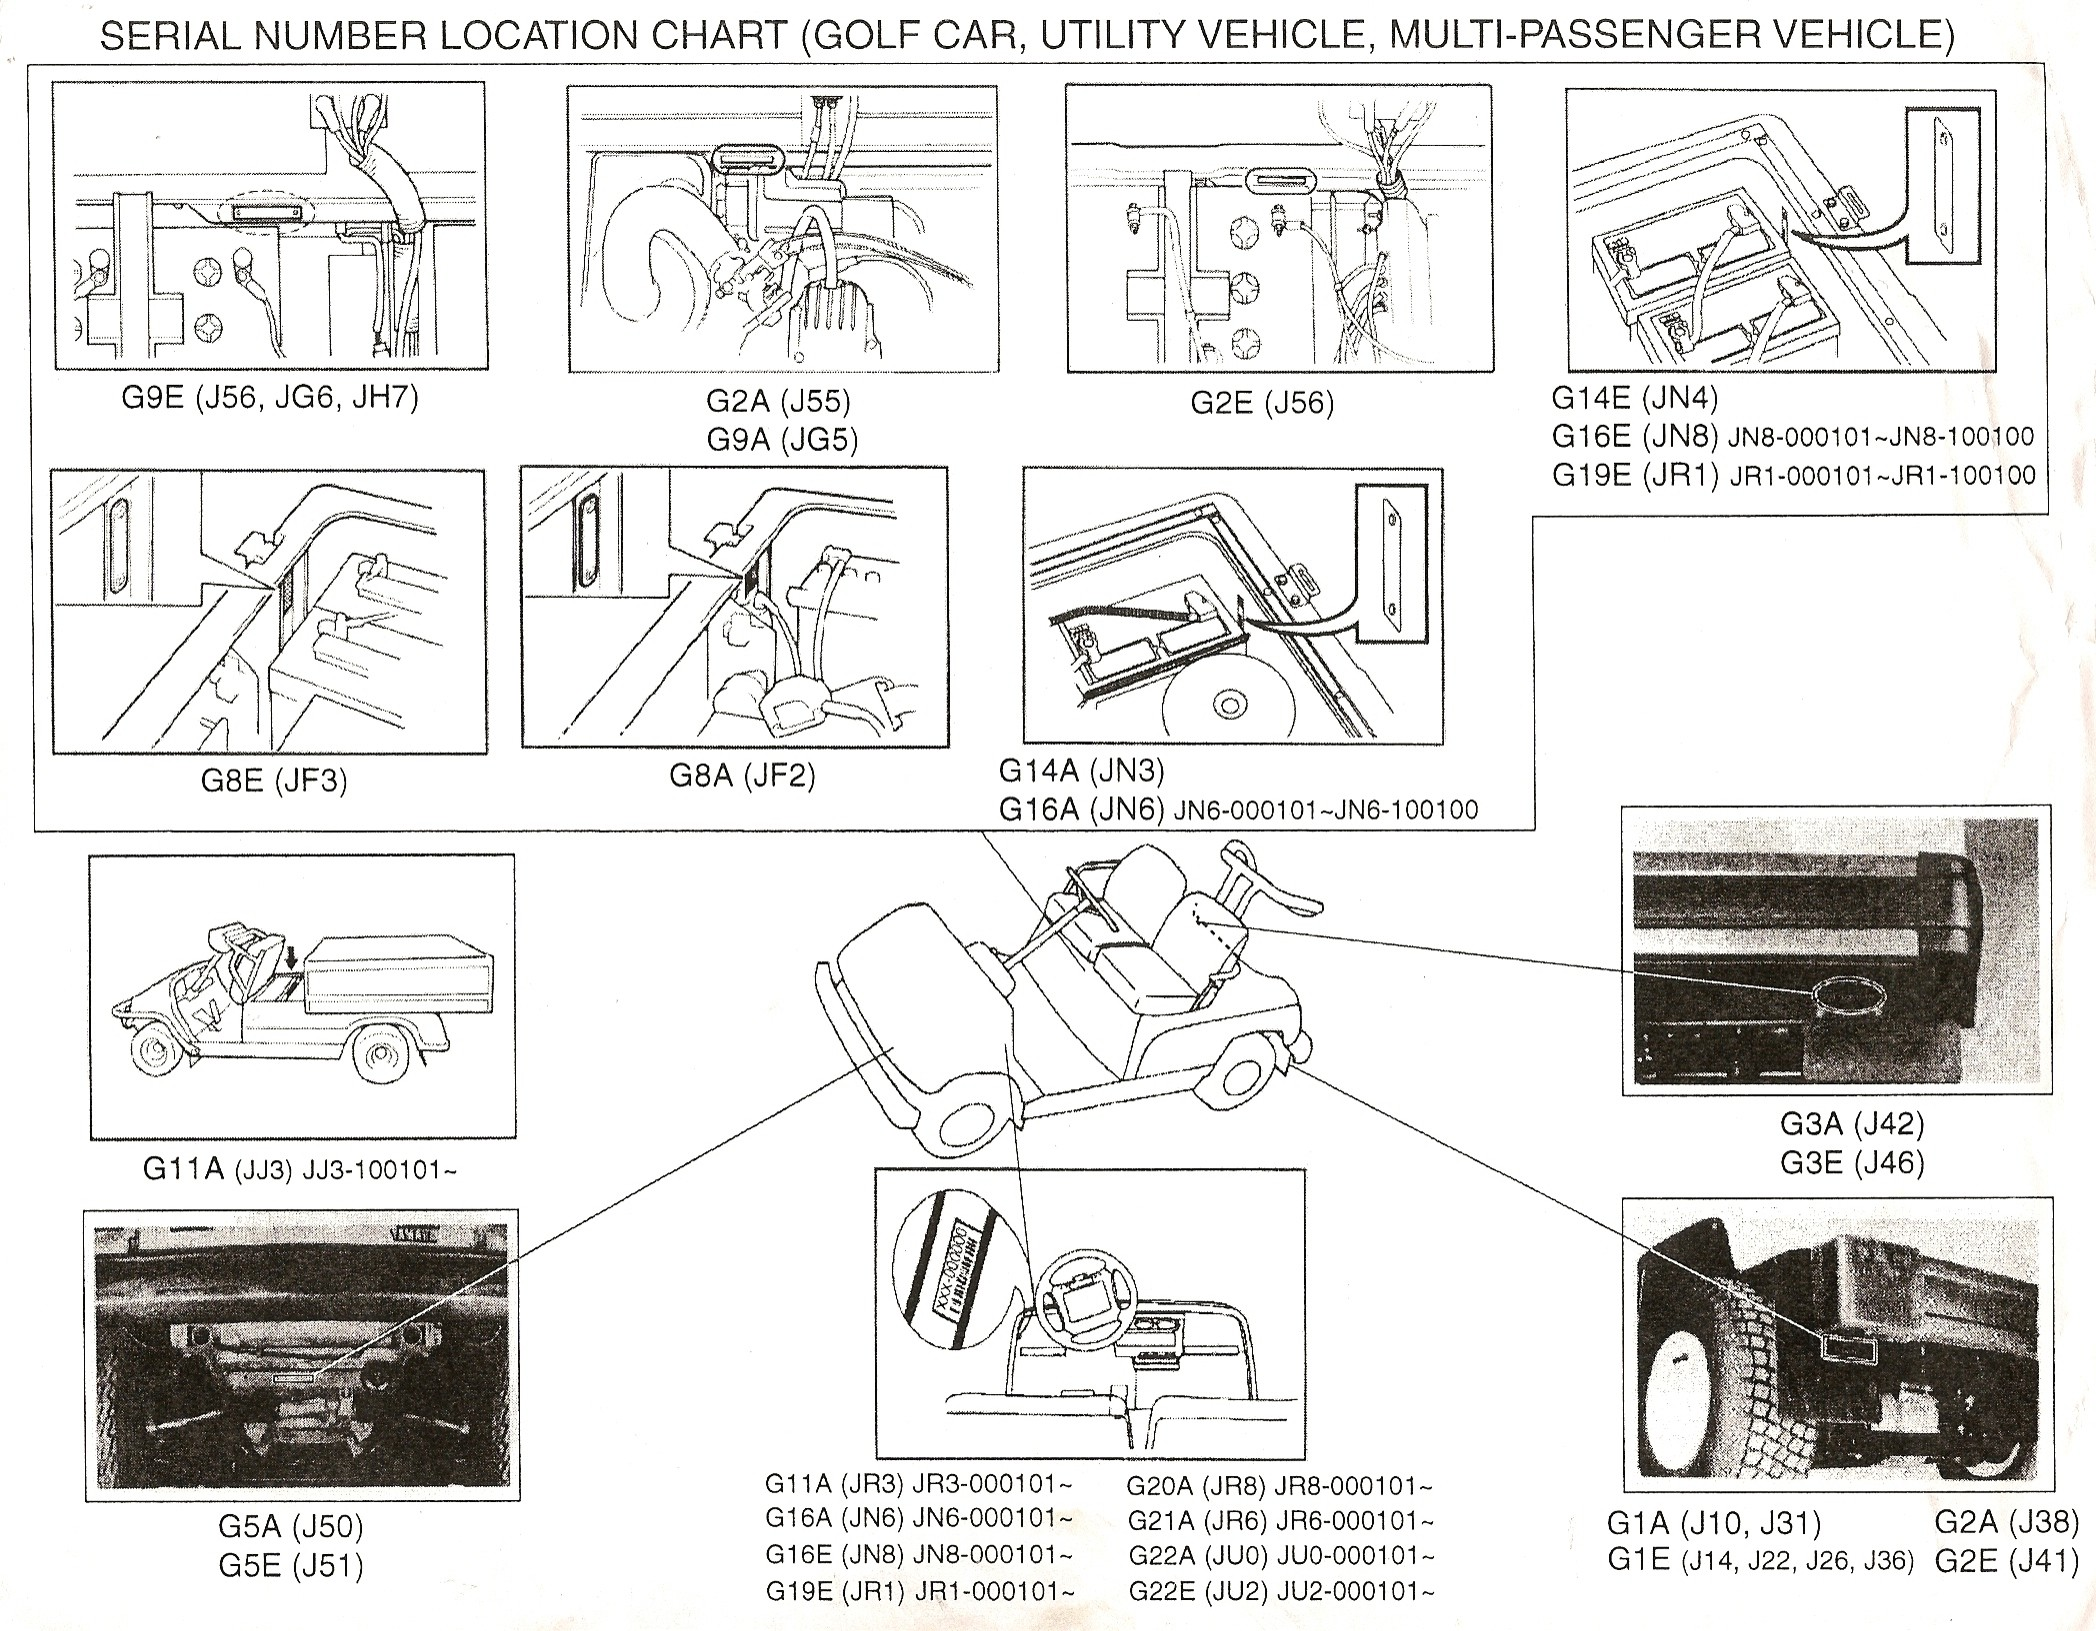 yamaha golf cart electrical diagram yamaha g1 golf cart wiring  yamaha g16e wiring diagrams wirdig, wiring diagram